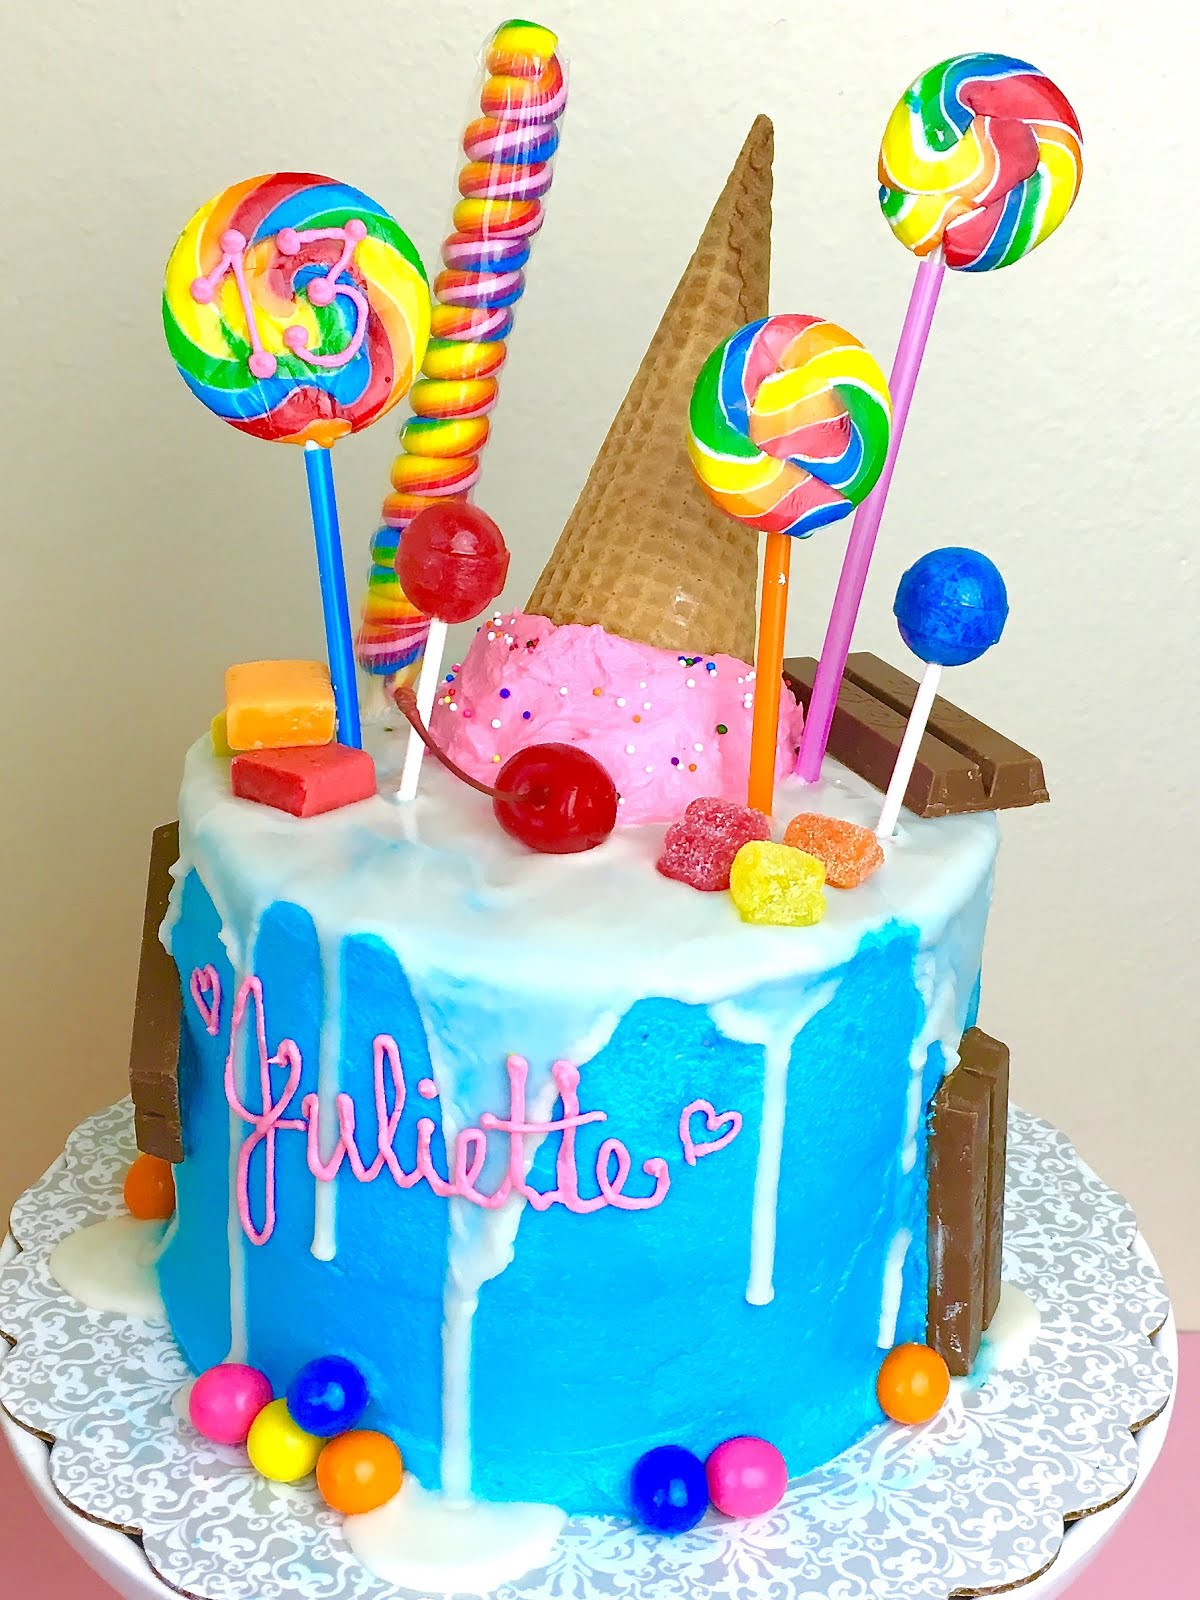 Best ideas about Birthday Cake Gum . Save or Pin Candy Cake The Lindsay Ann Now.